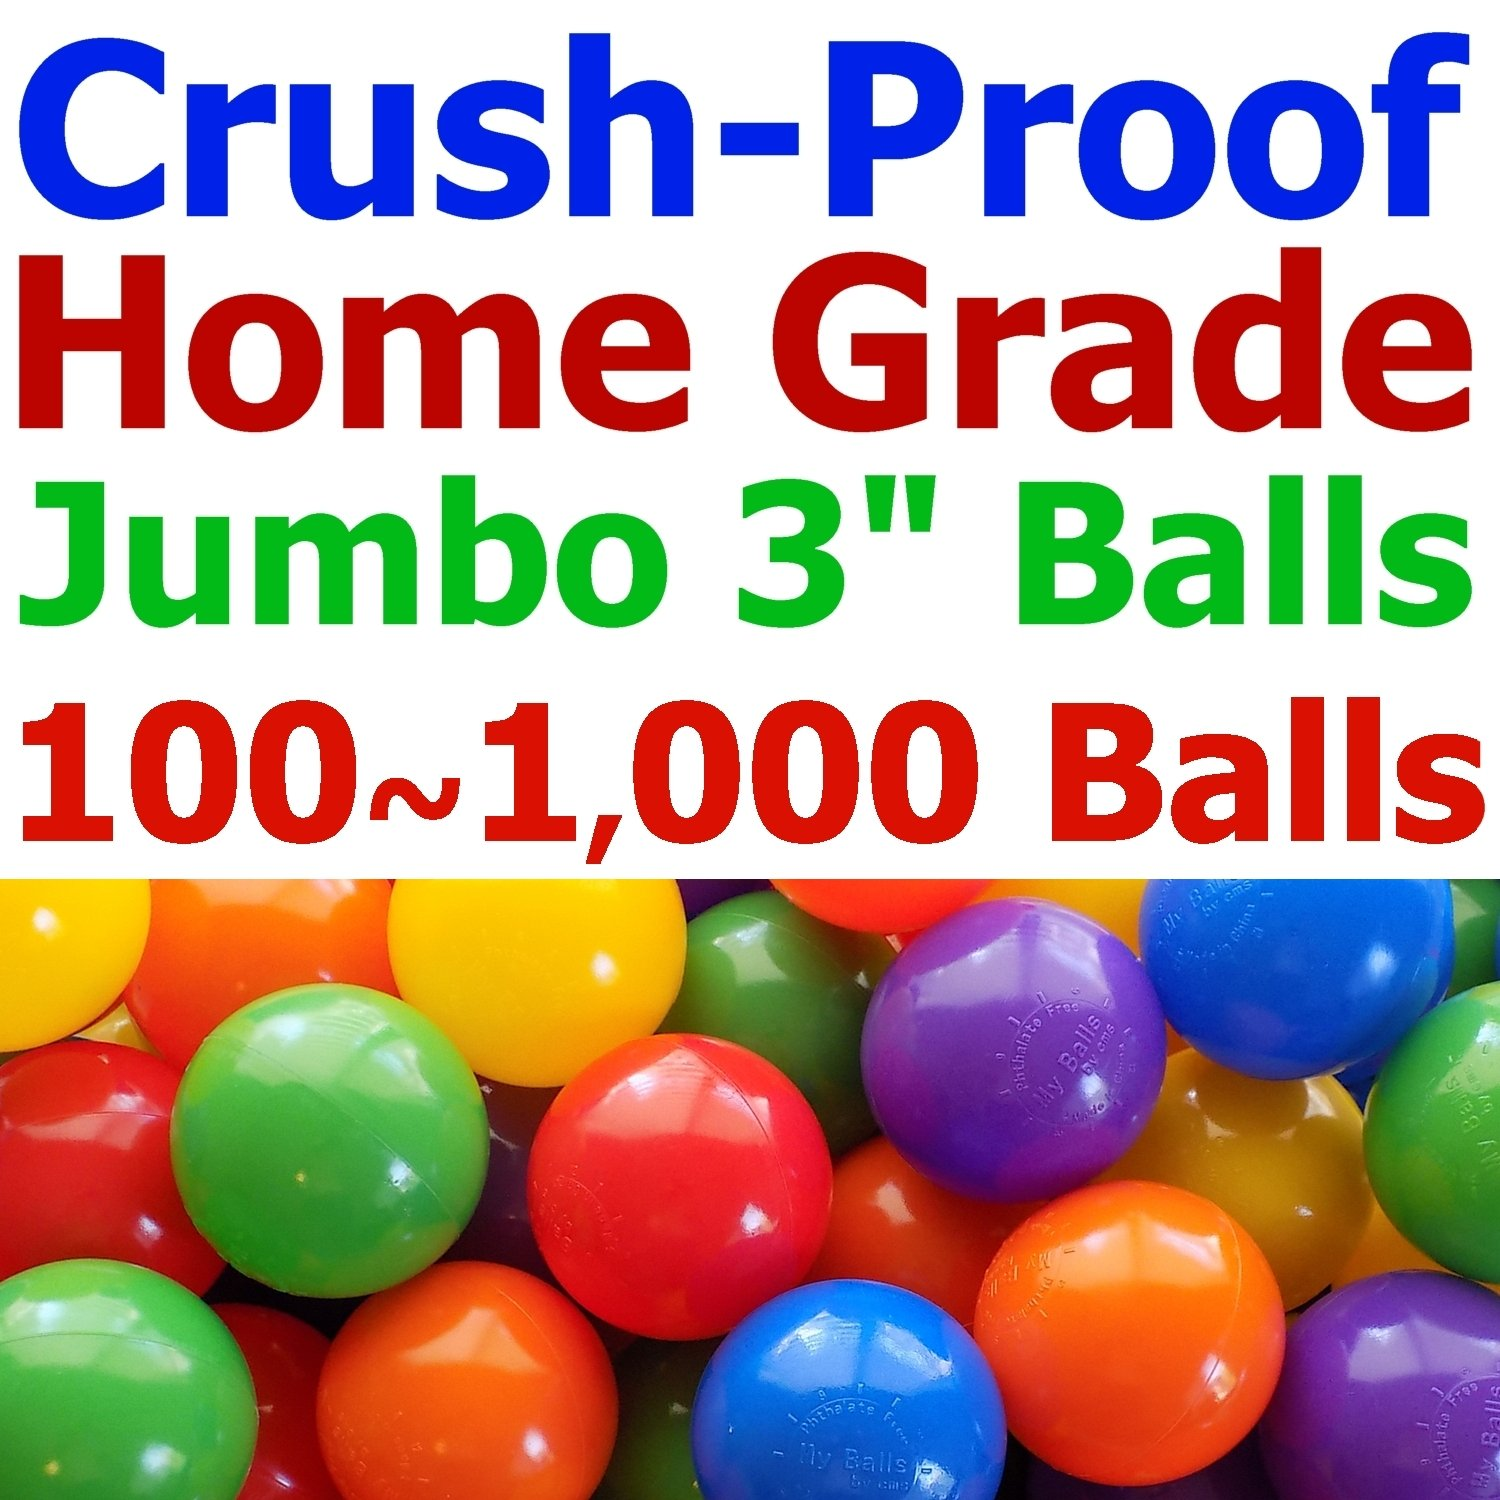 My Balls Pack of 600 Jumbo 3'' Standard Home Grade Crush-Proof Ball Pit Balls - Bright Colors, Phthalate Free, BPA Free, PVC Free, non-Toxic, non-Recycled Plastic